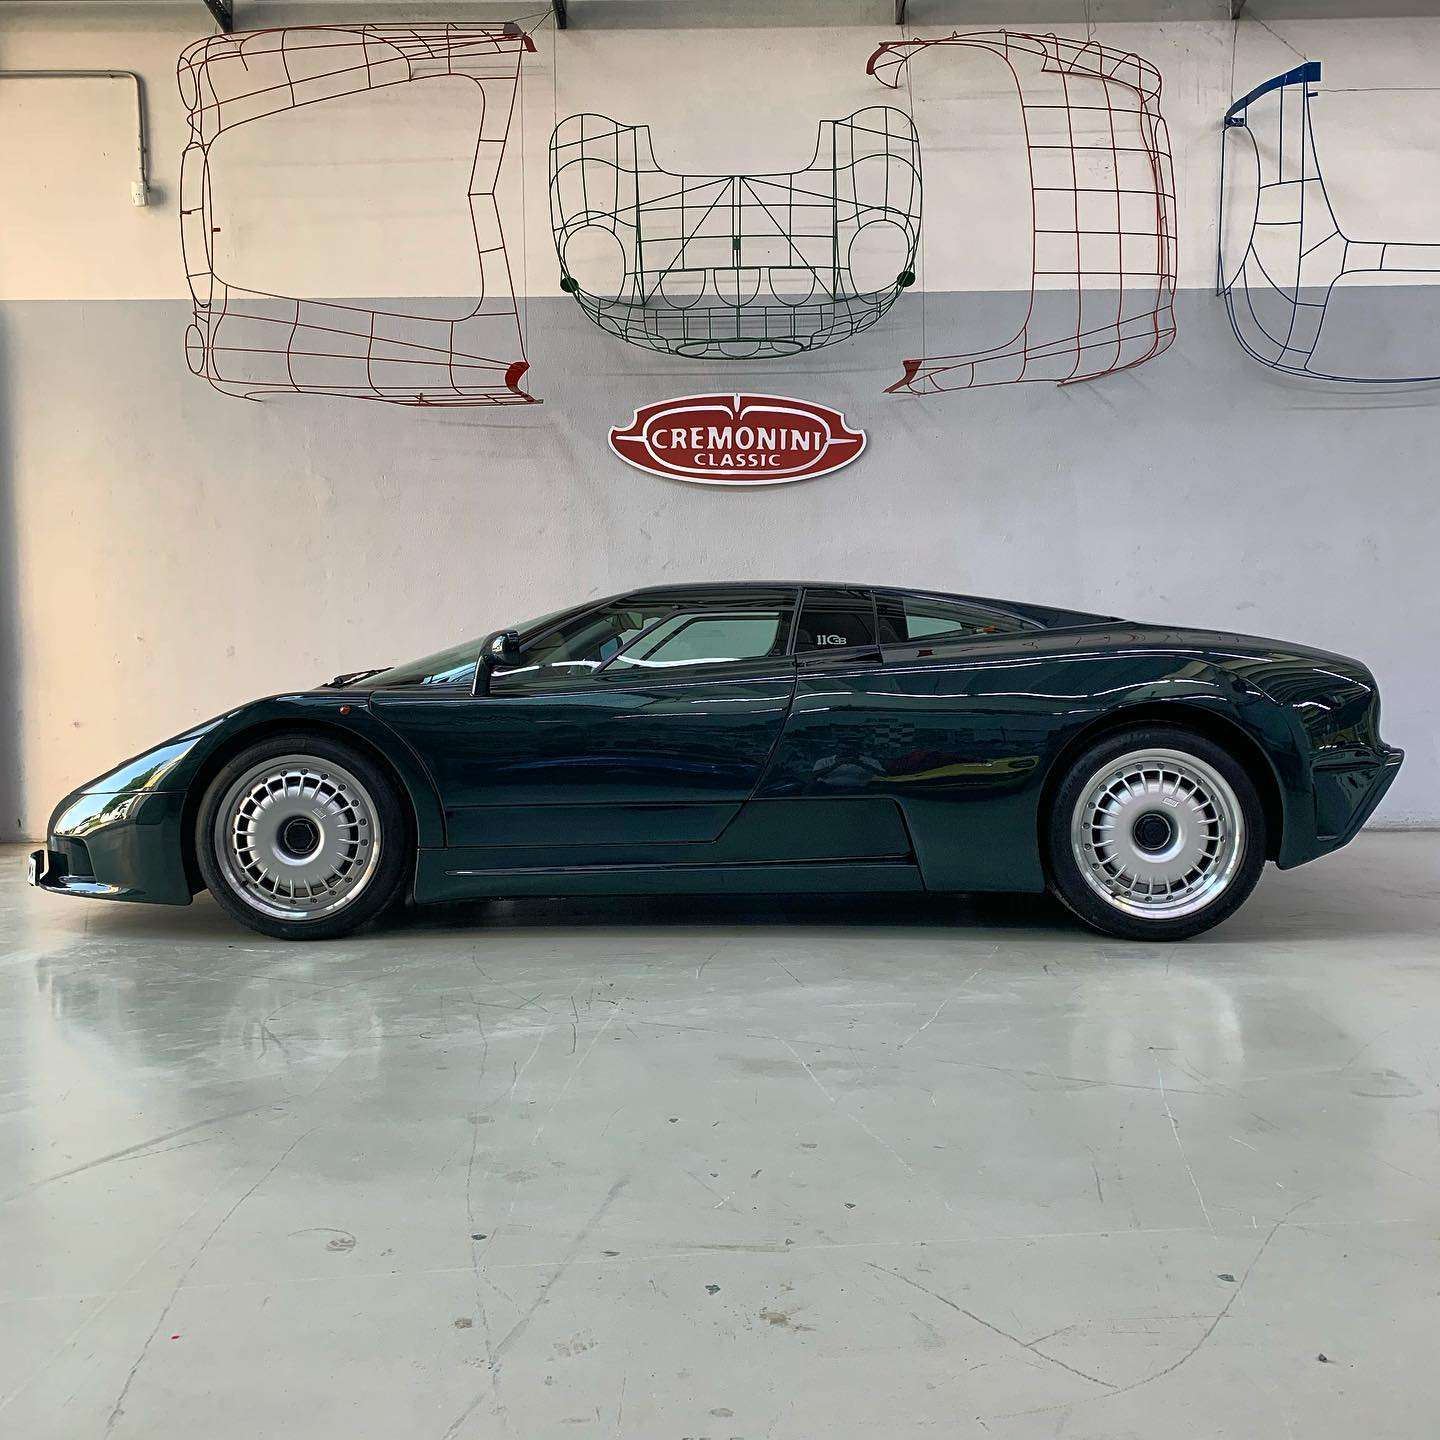 We couldn't have asked for a better delivery on our last work day before Summer break: this impressive Bugatti EB 110 is now heading to her new home  – – – #bugattieb110 #supercars #italianstyle #classiccars #doosetdaram #bugatti #eb110 #britishracinggreen #bugatticampogalliano #motorvalley #cremoniniclassic #ilovemyjob